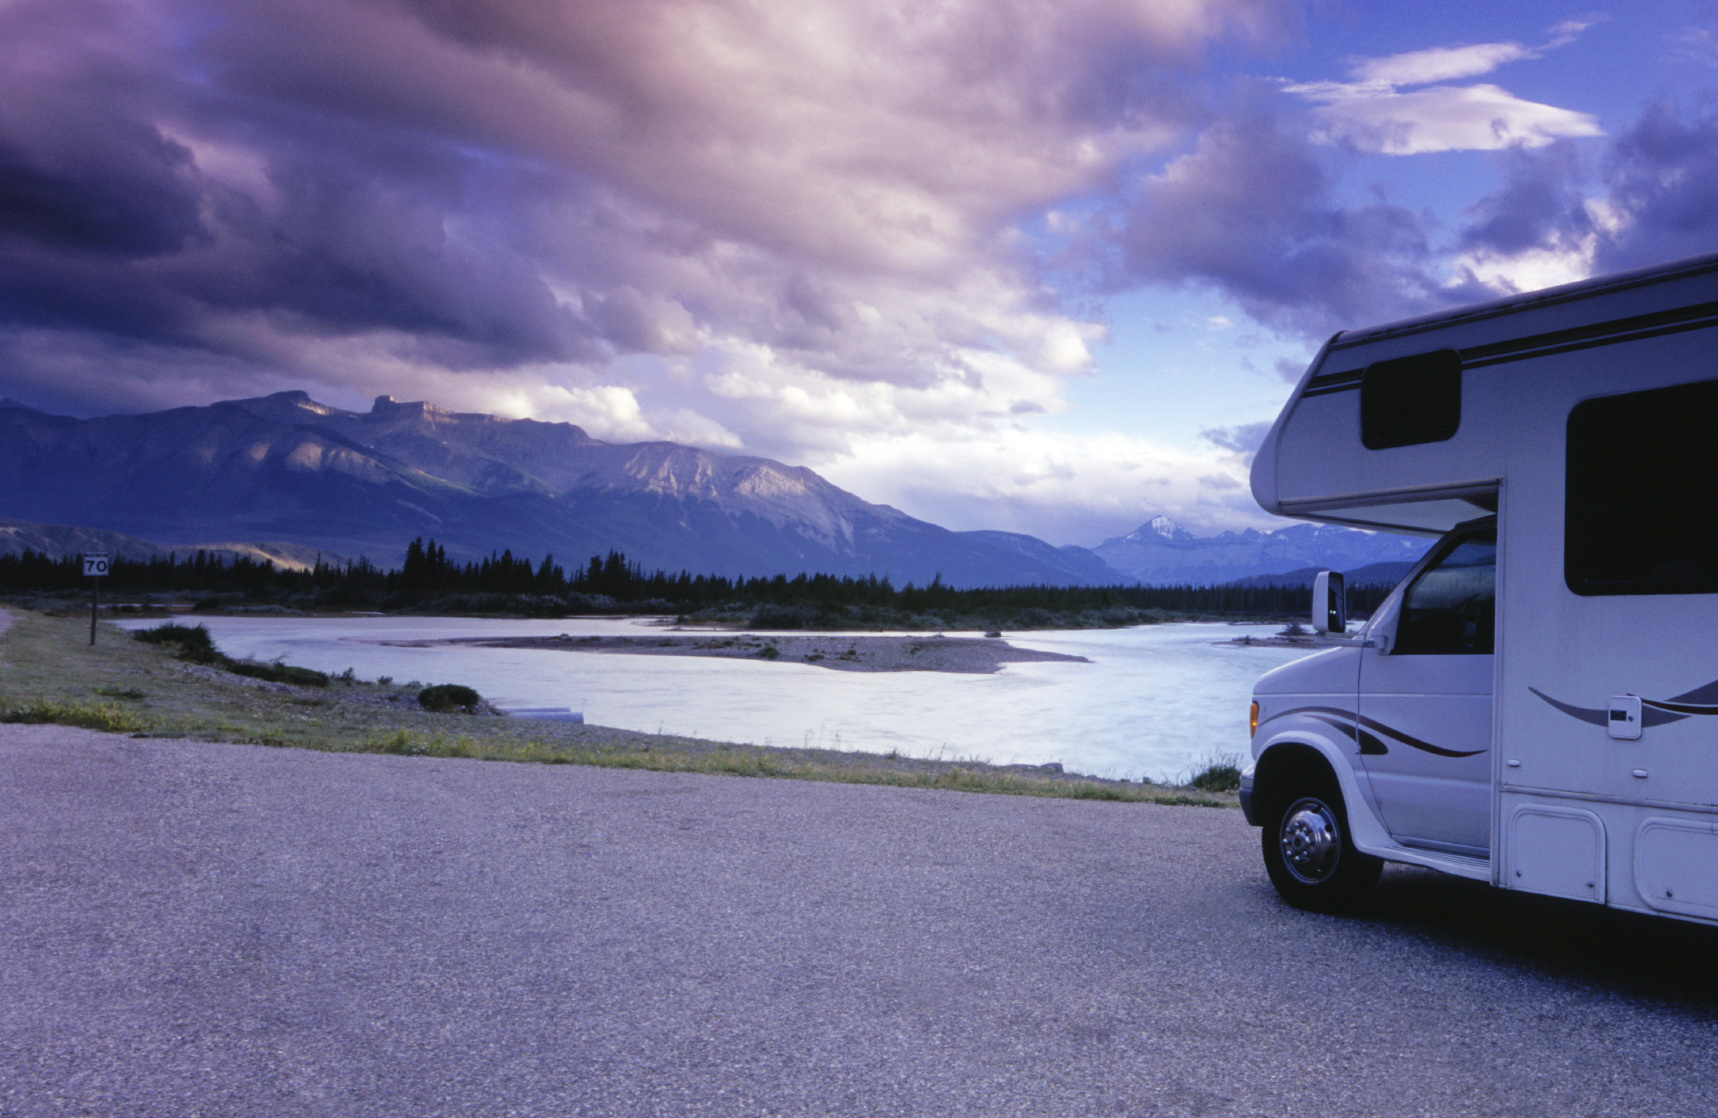 48+] How to Wallpaper A RV on WallpaperSafari